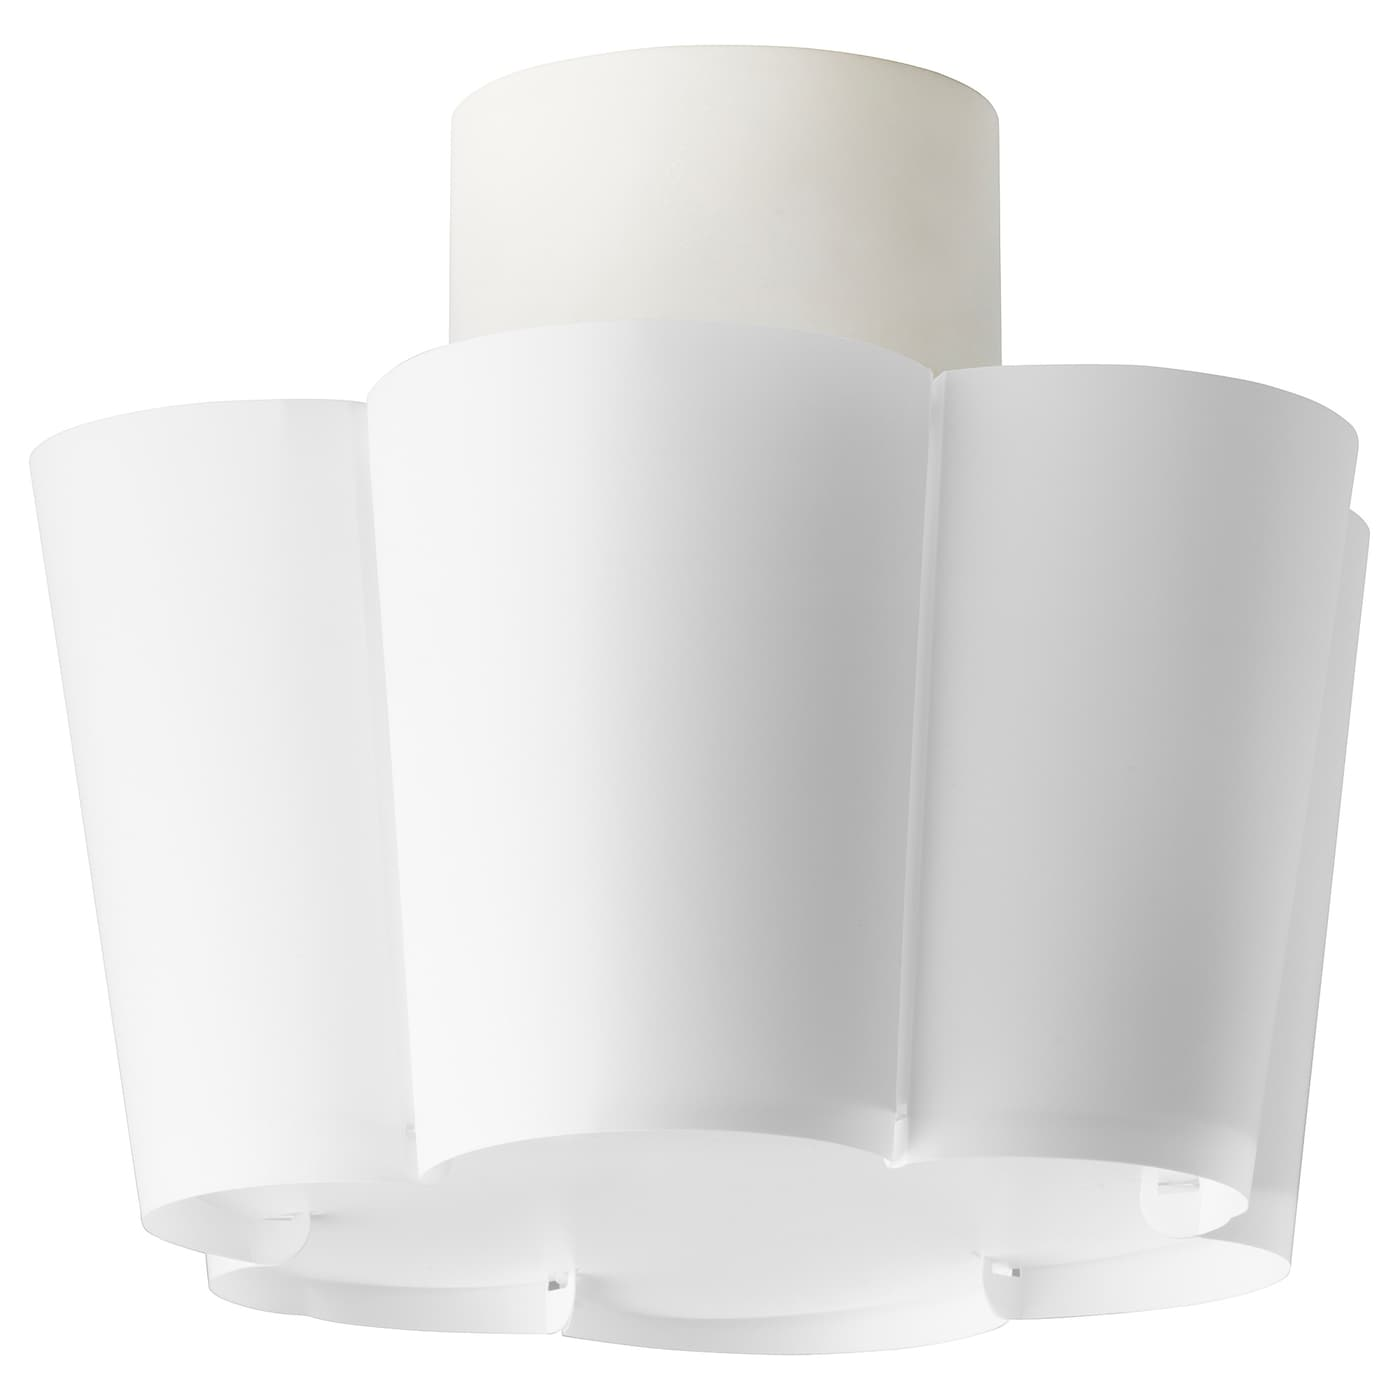 Lighting Lamps Led Ikea 3 Way Hall Light Switch Lysboj Ceiling Lamp Diffused That Provides Good General In The Room